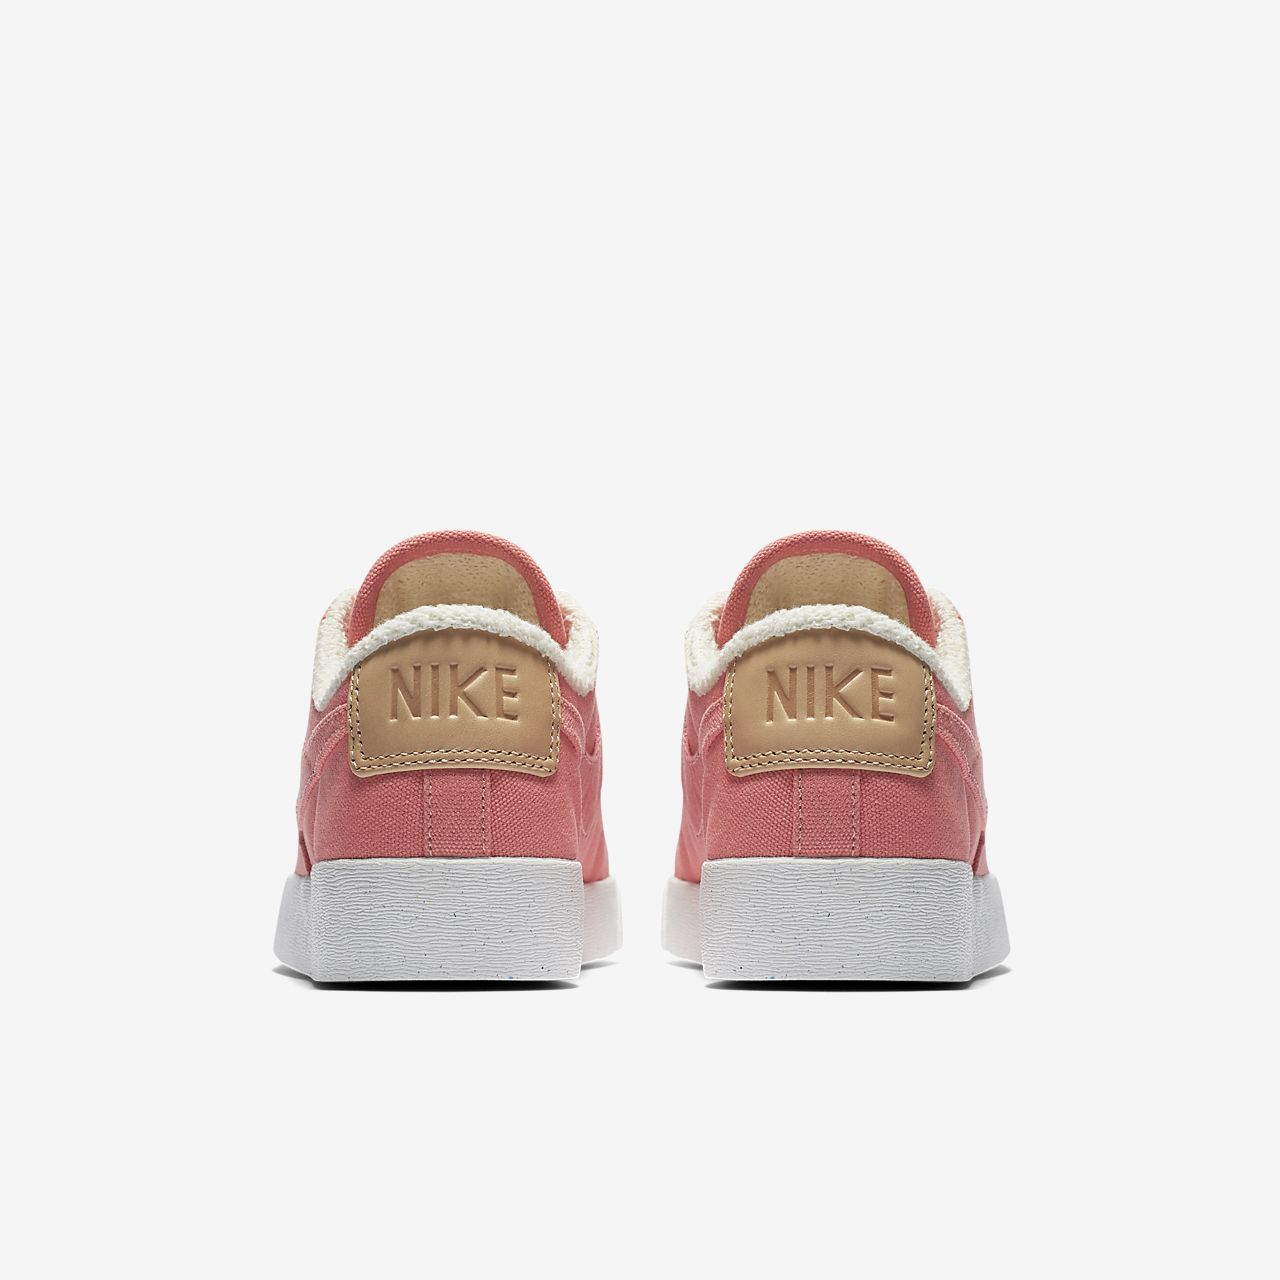 timeless design efa73 809b5 ... Nike Blazer Low LX Women s Shoe